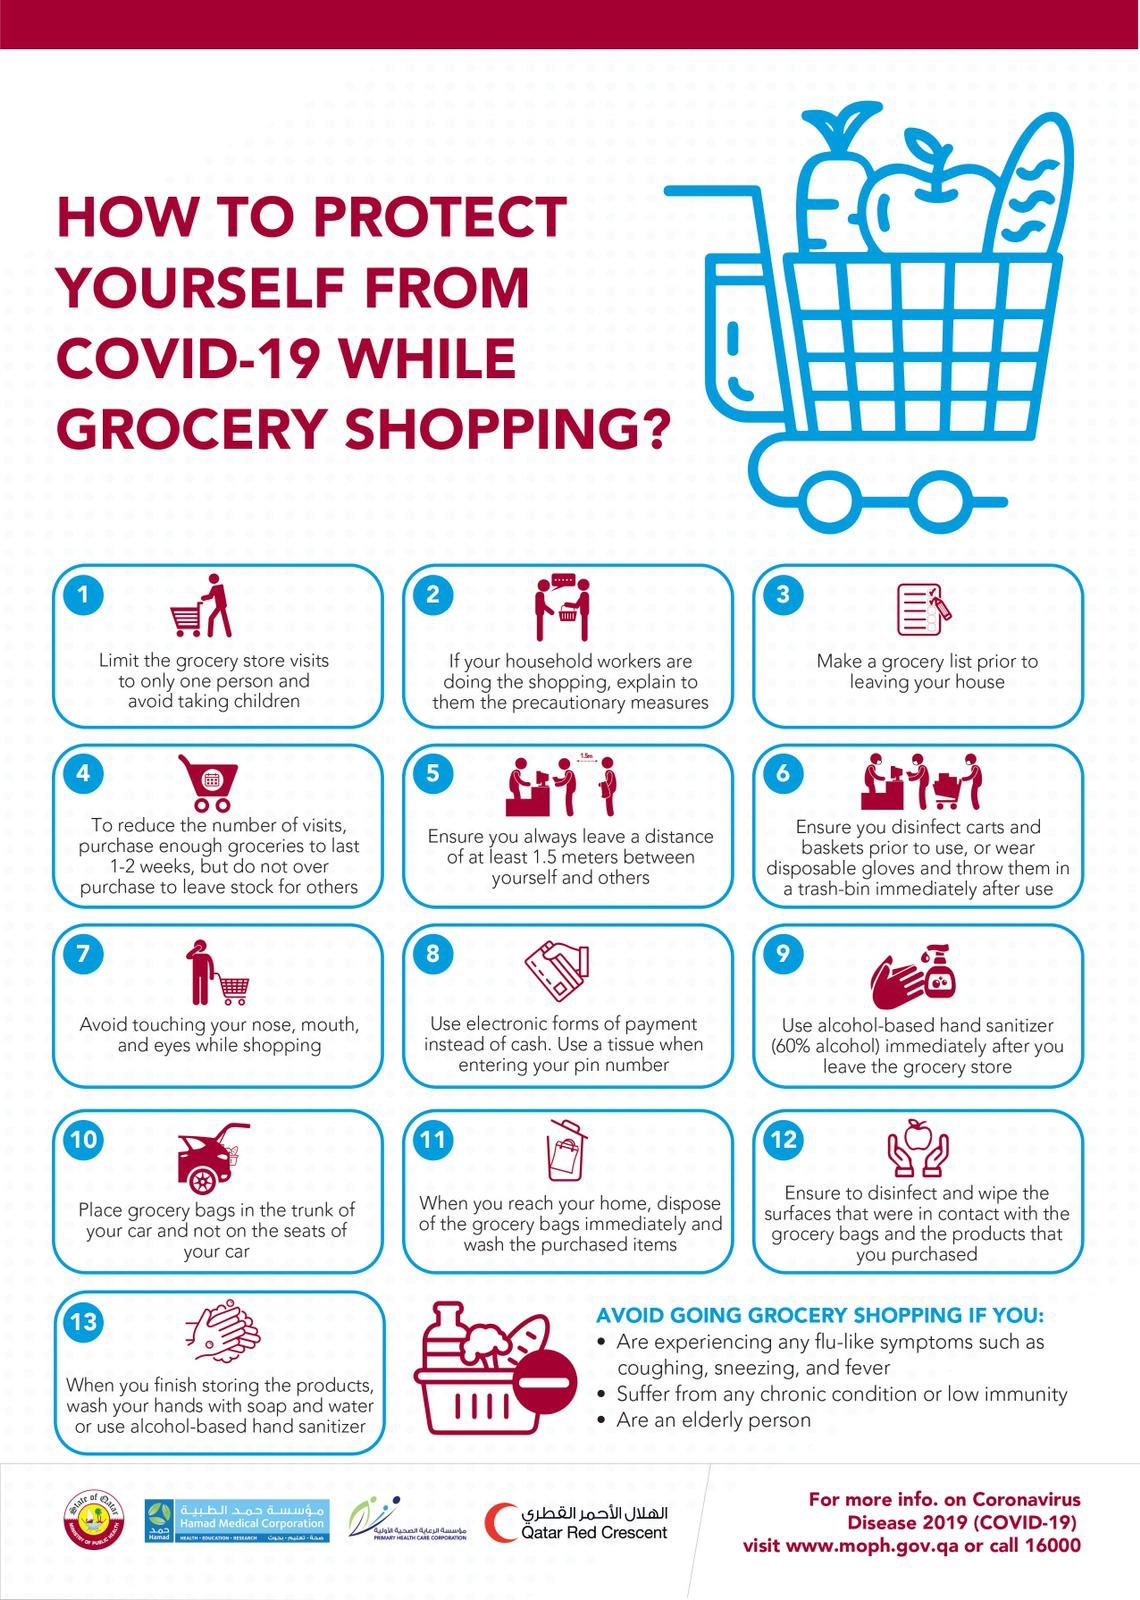 HOW TO PROTECT YOURSELF FROM COVID - 19 WHILE GROCERY SHOPPING?